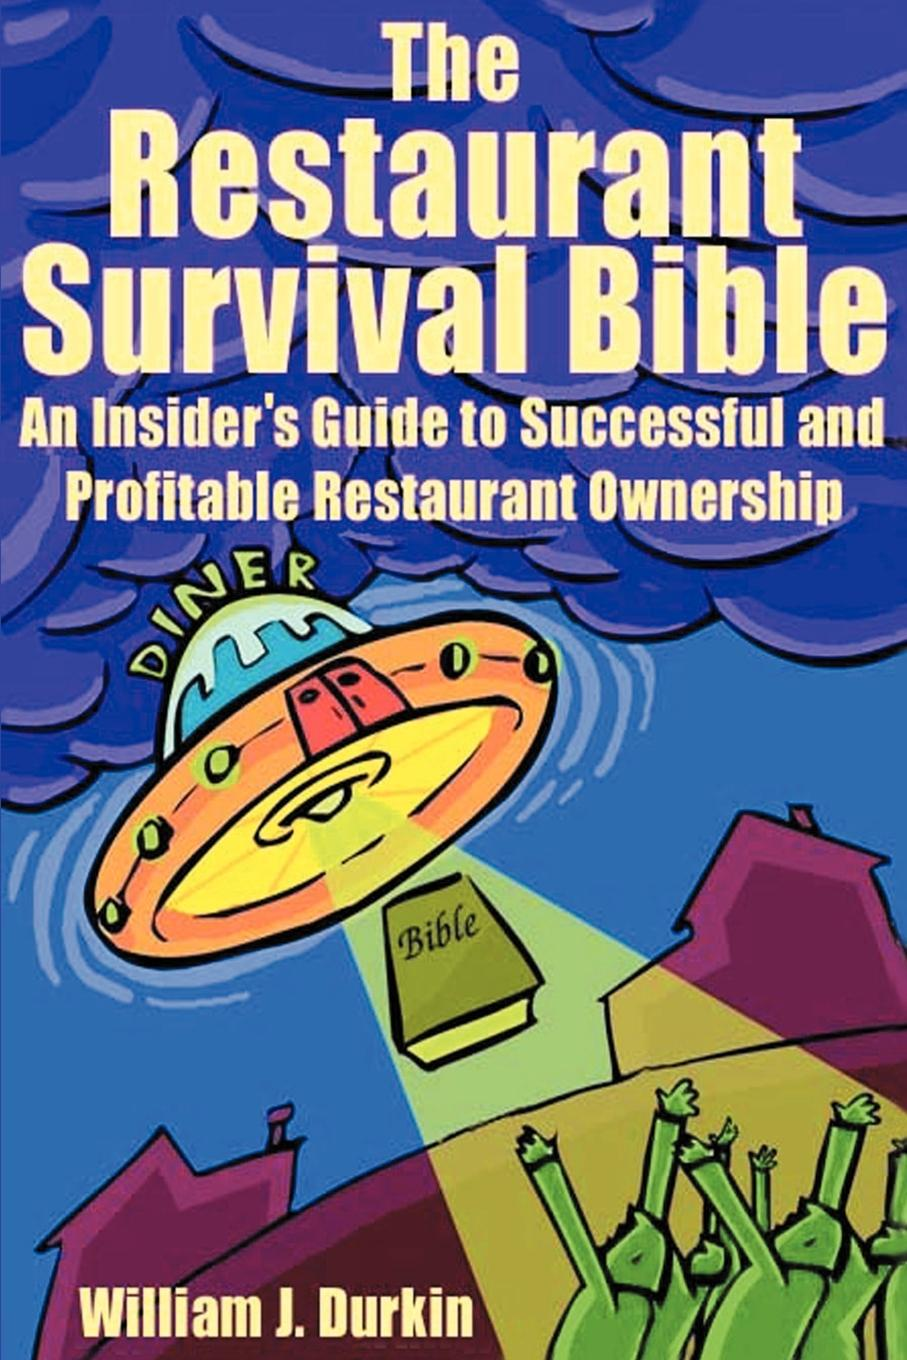 William J. Durkin The Restaurant Survival Bible. An Insider's Guide to Successful and Profitable Restaurant Ownership rebecca branstetter the school psychologist s survival guide